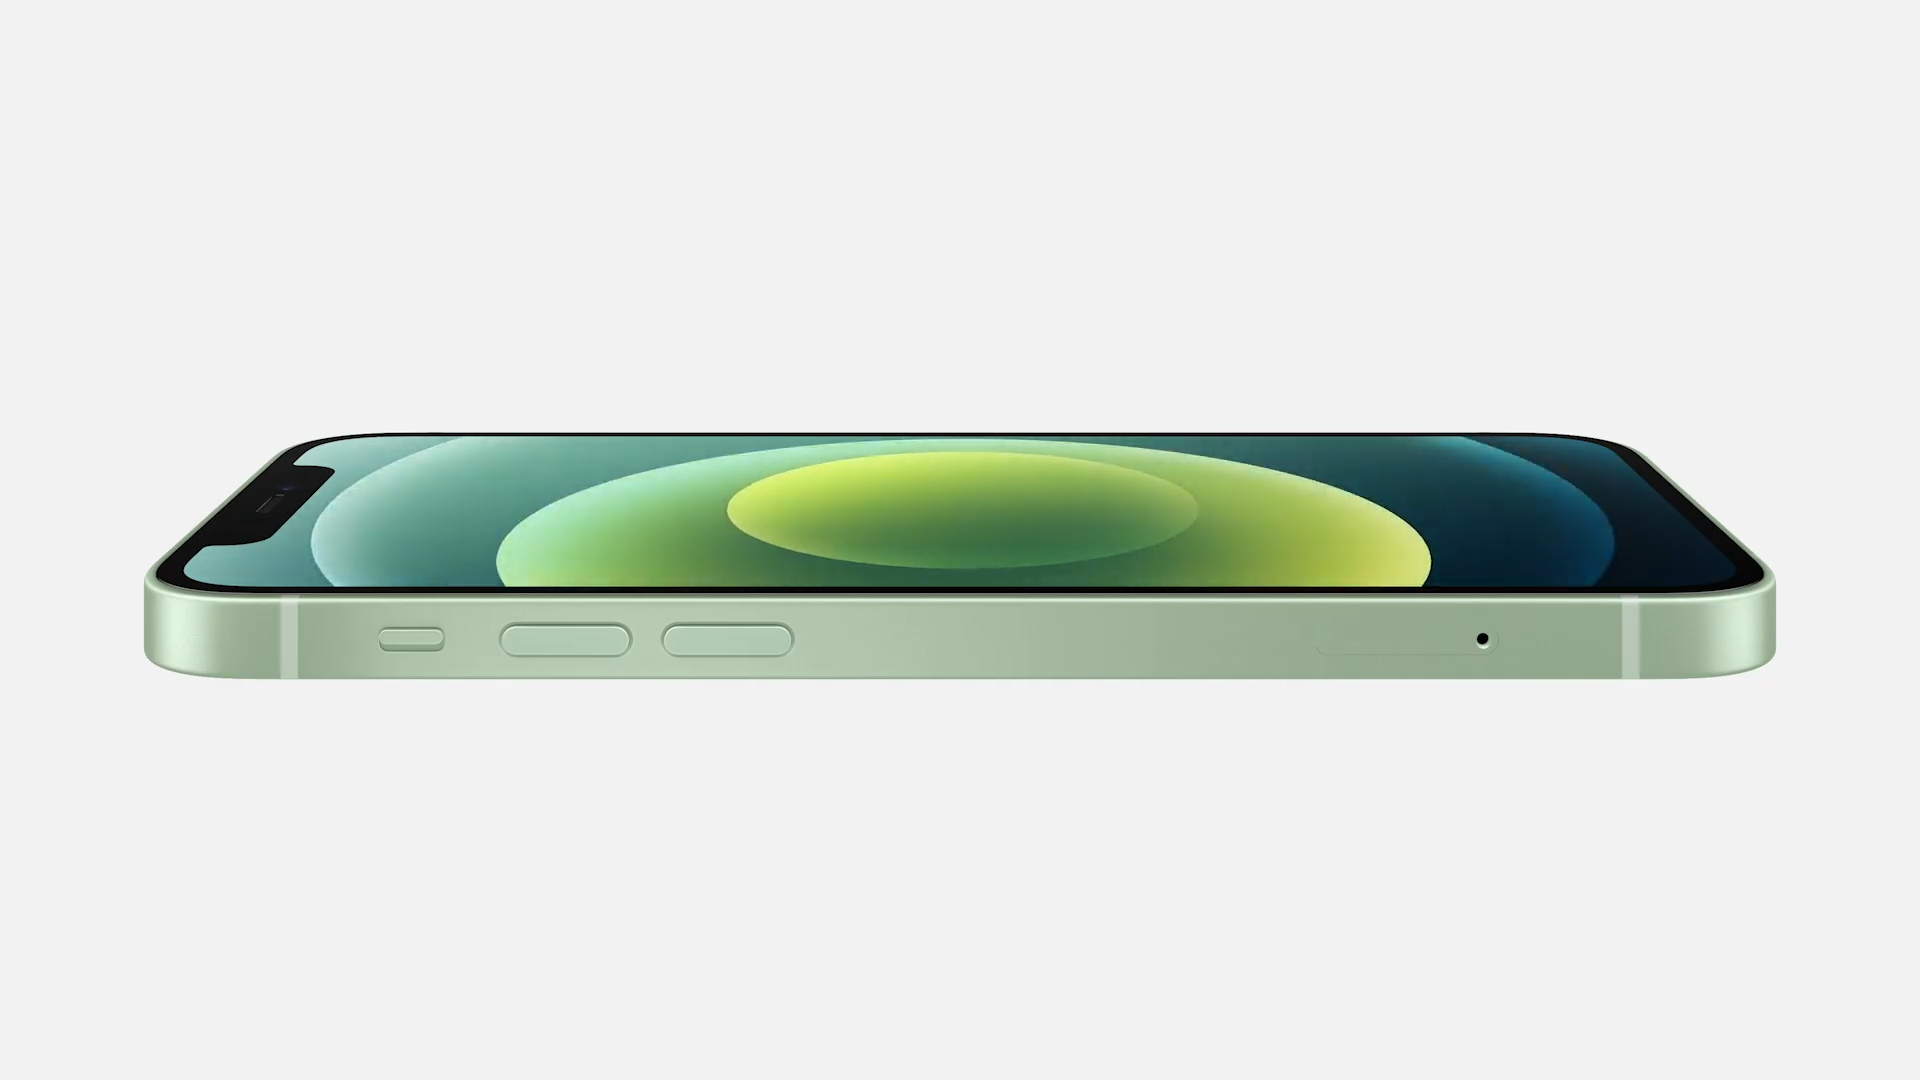 1602618035 820 Apple officially unveils iPhone 12 iPhone 12 mini iPhone 12